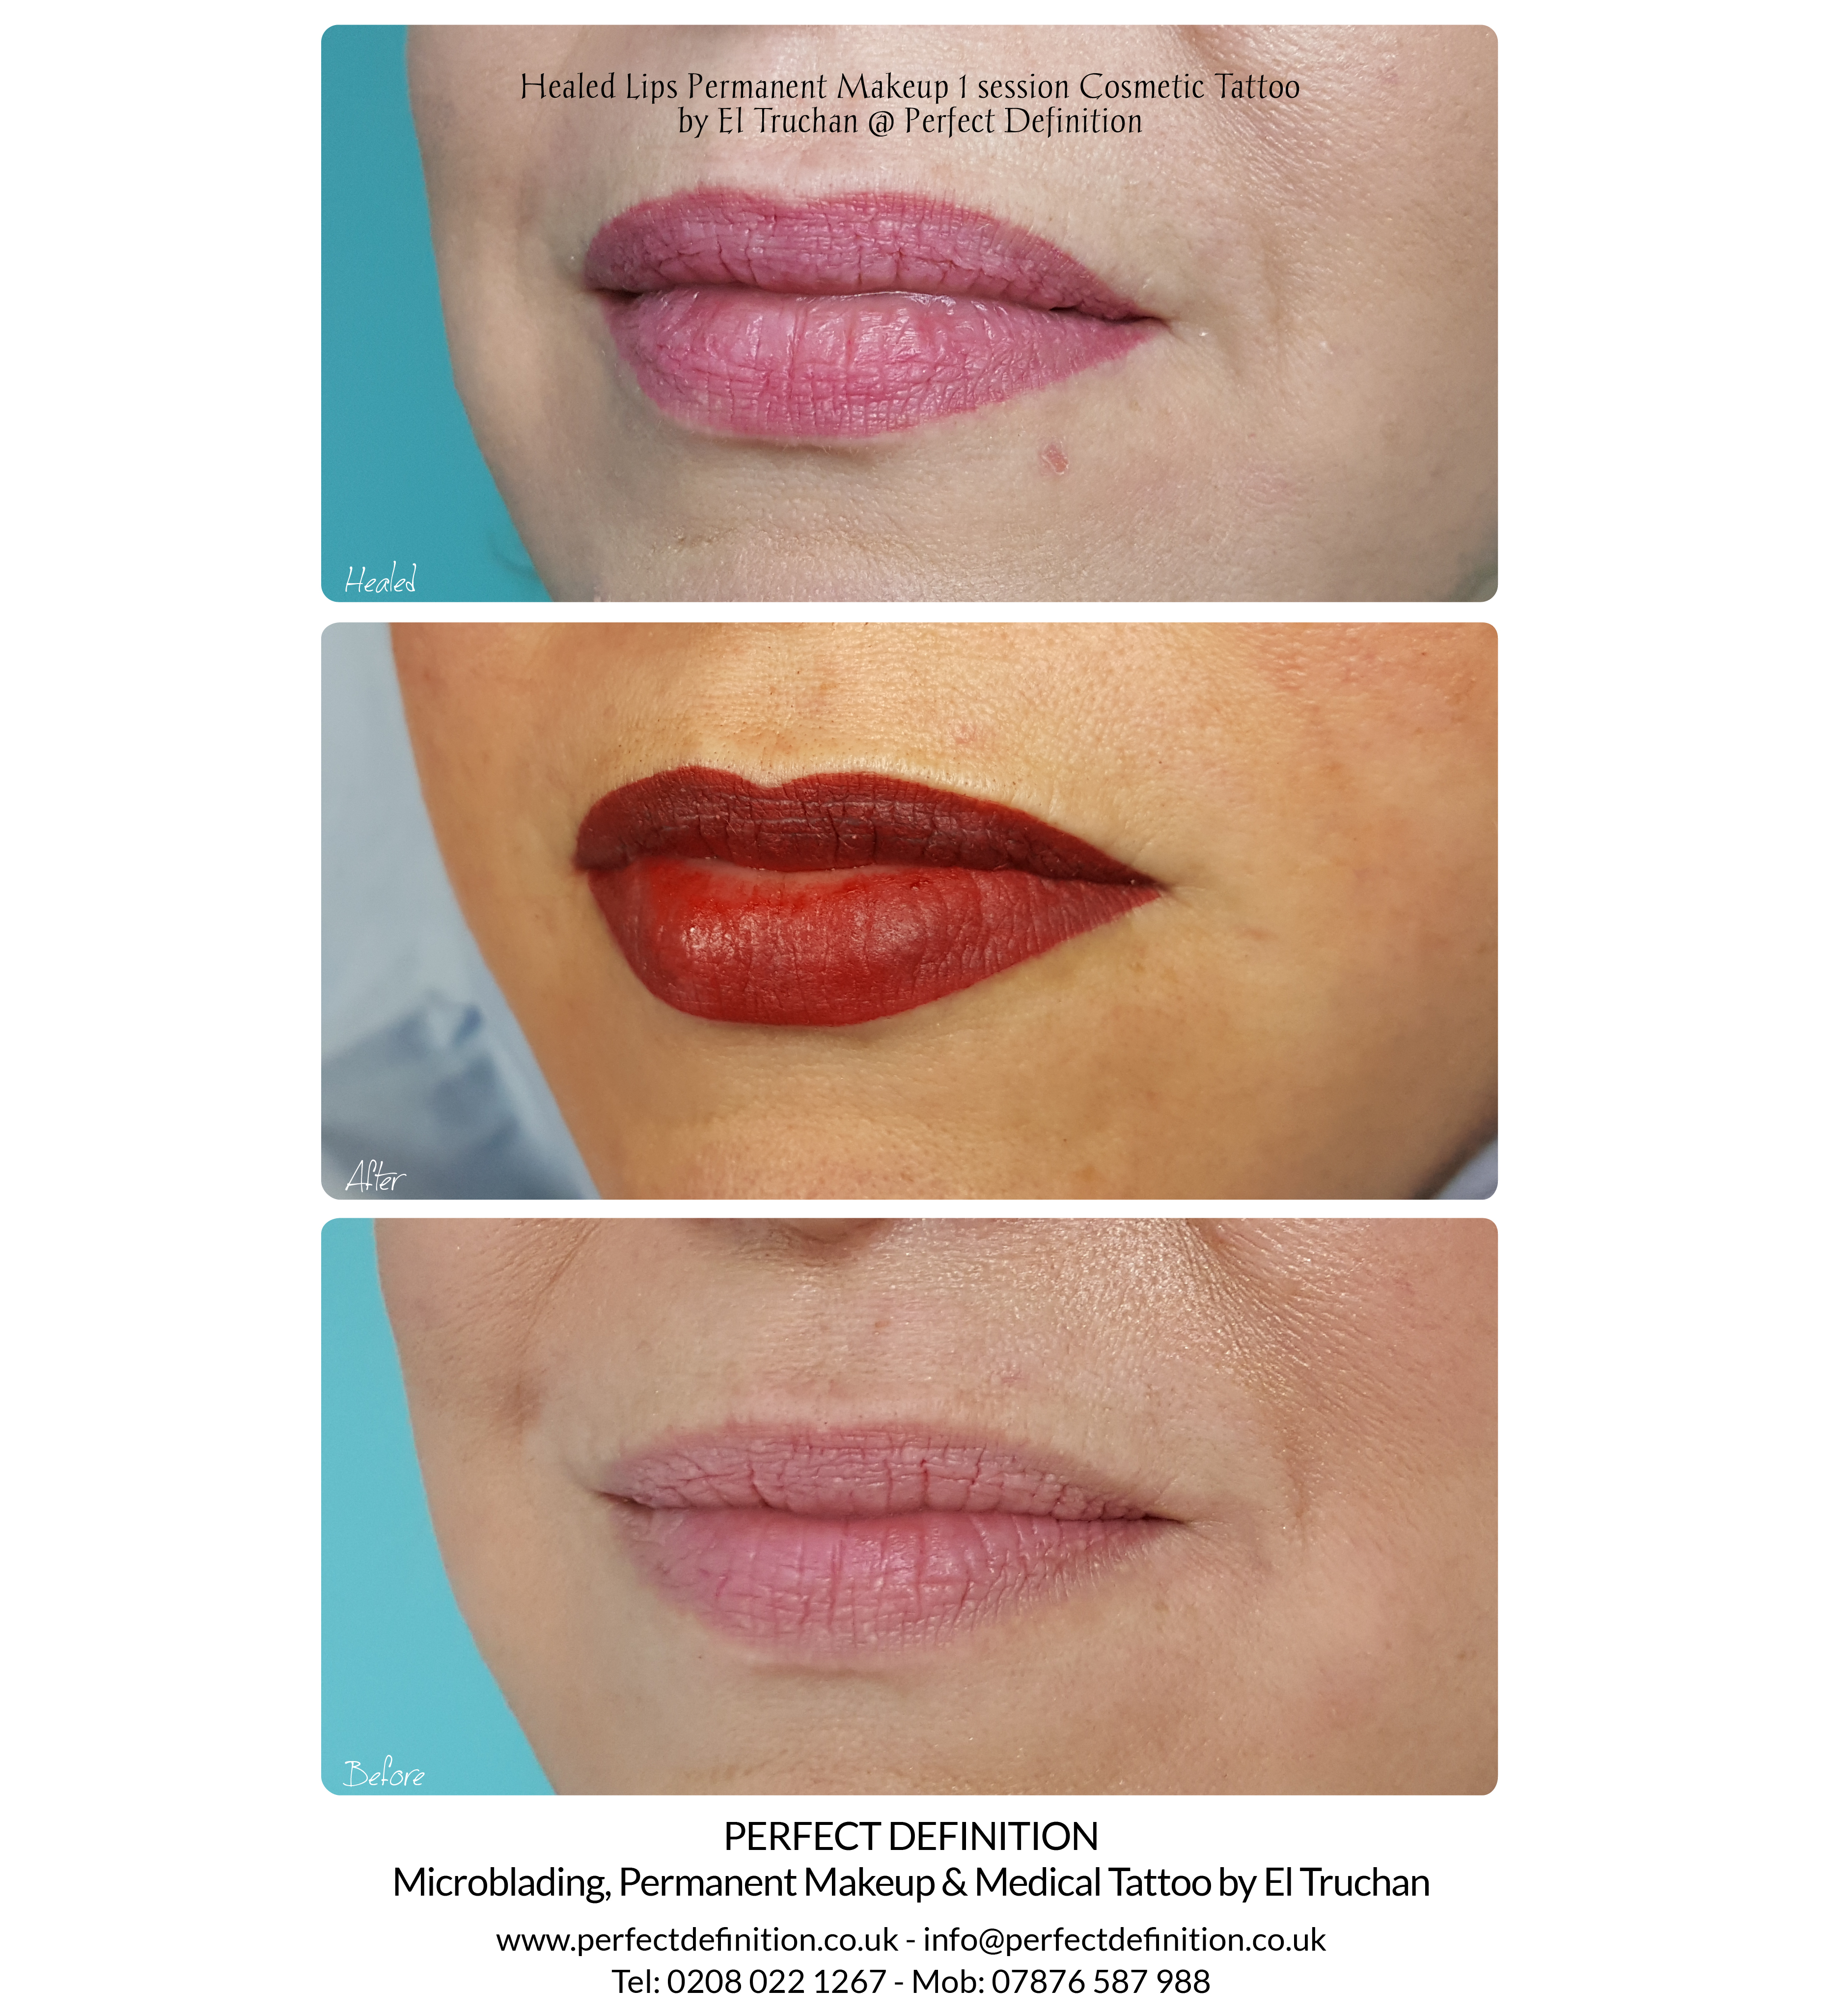 Healed Lips Permanent Makeup Cosmetic Ta